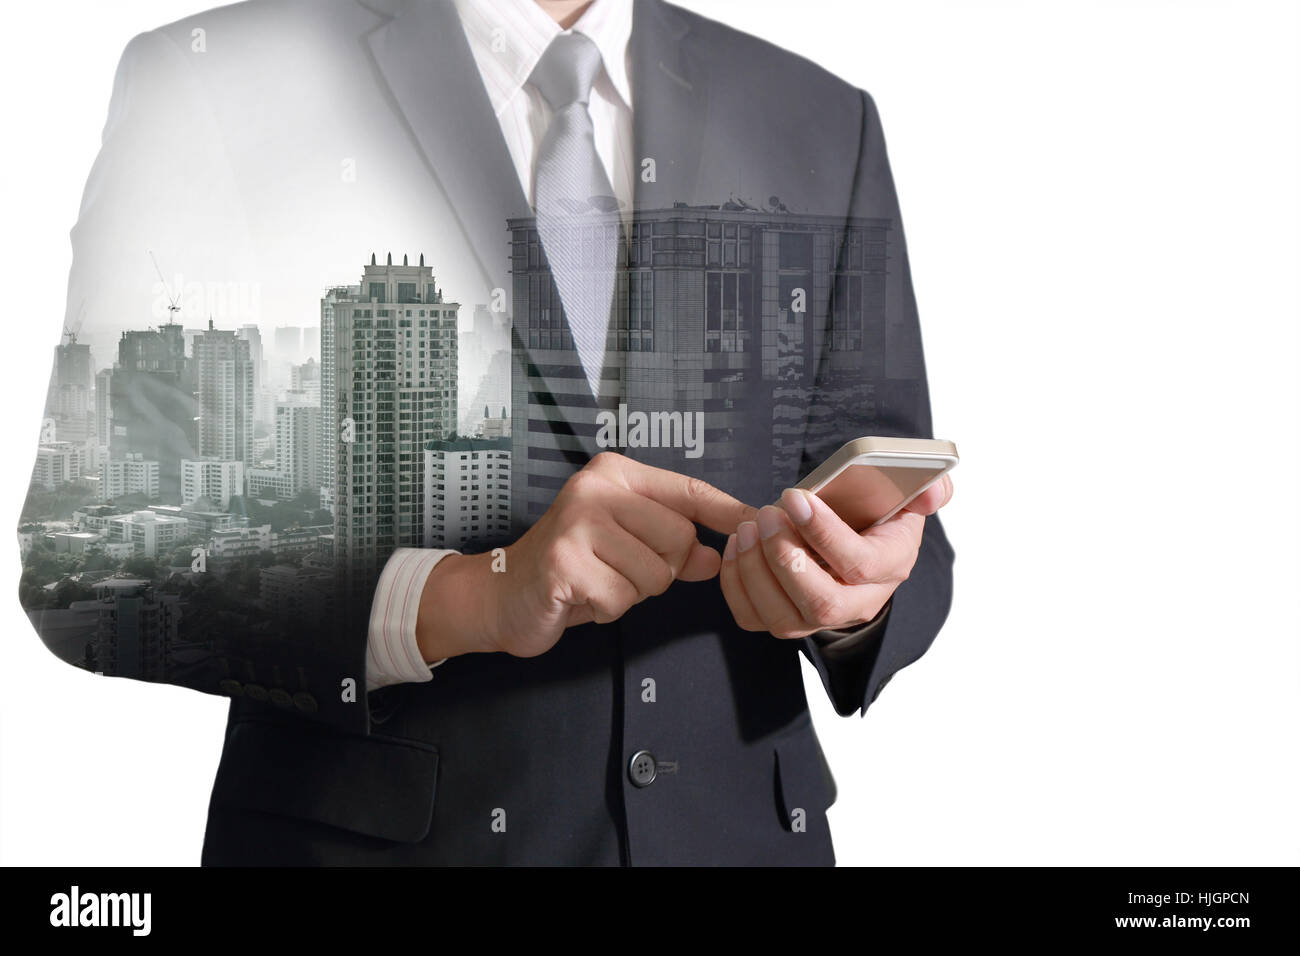 Double exposure of city and business man hand touch screen smart phone as business concept. Stock Photo